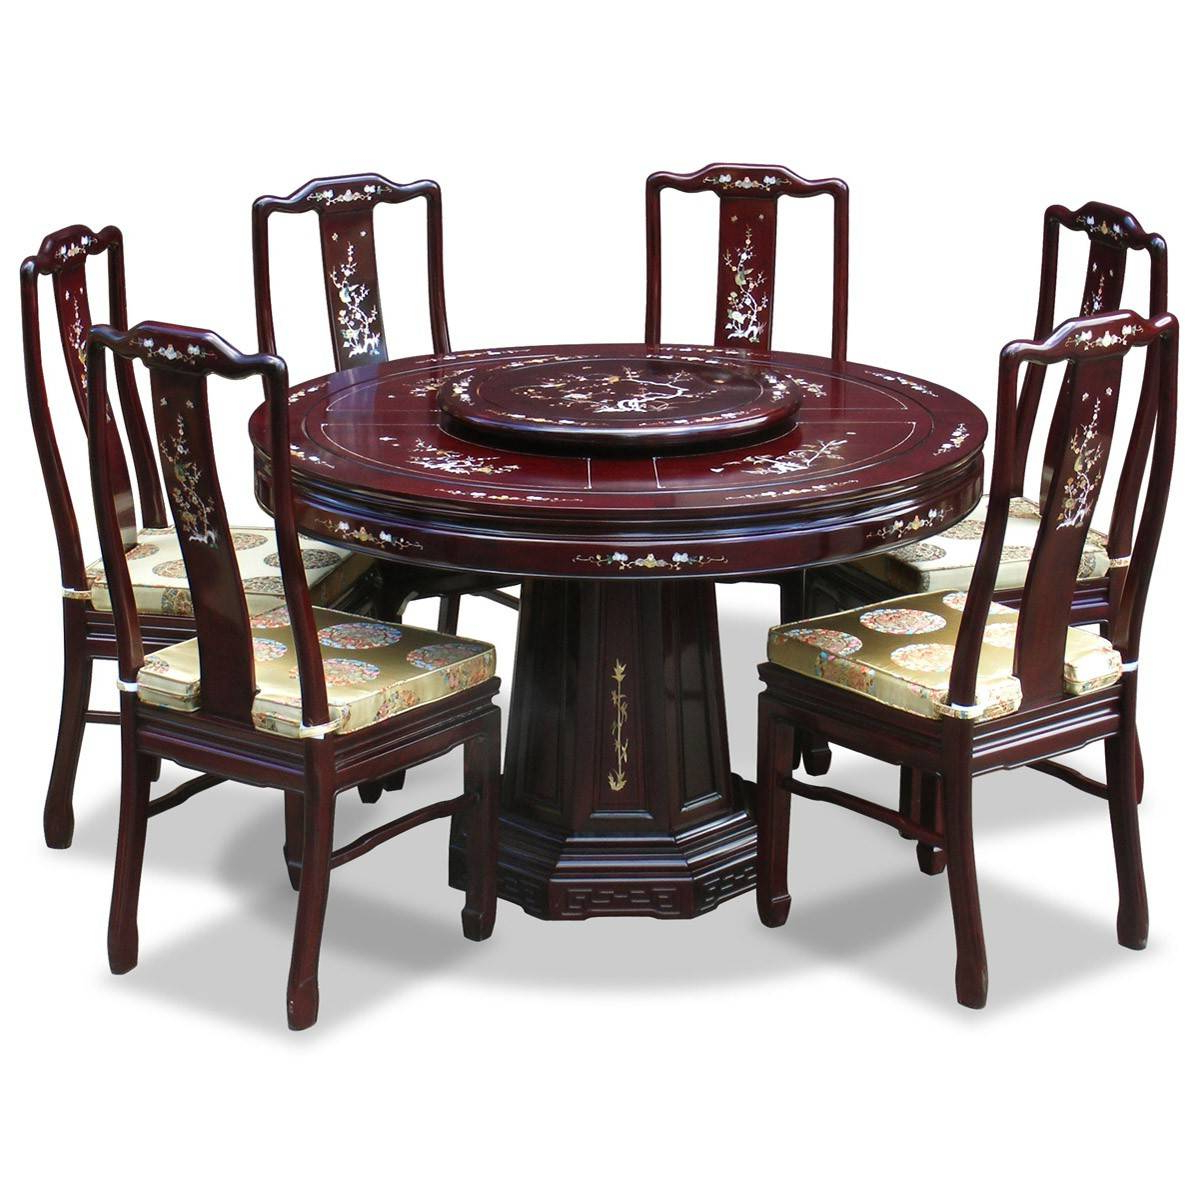 Preferred Glass Round Dining Table Ideas Decor Circle Modern Images With Modern Round Glass Top Dining Tables (View 16 of 25)